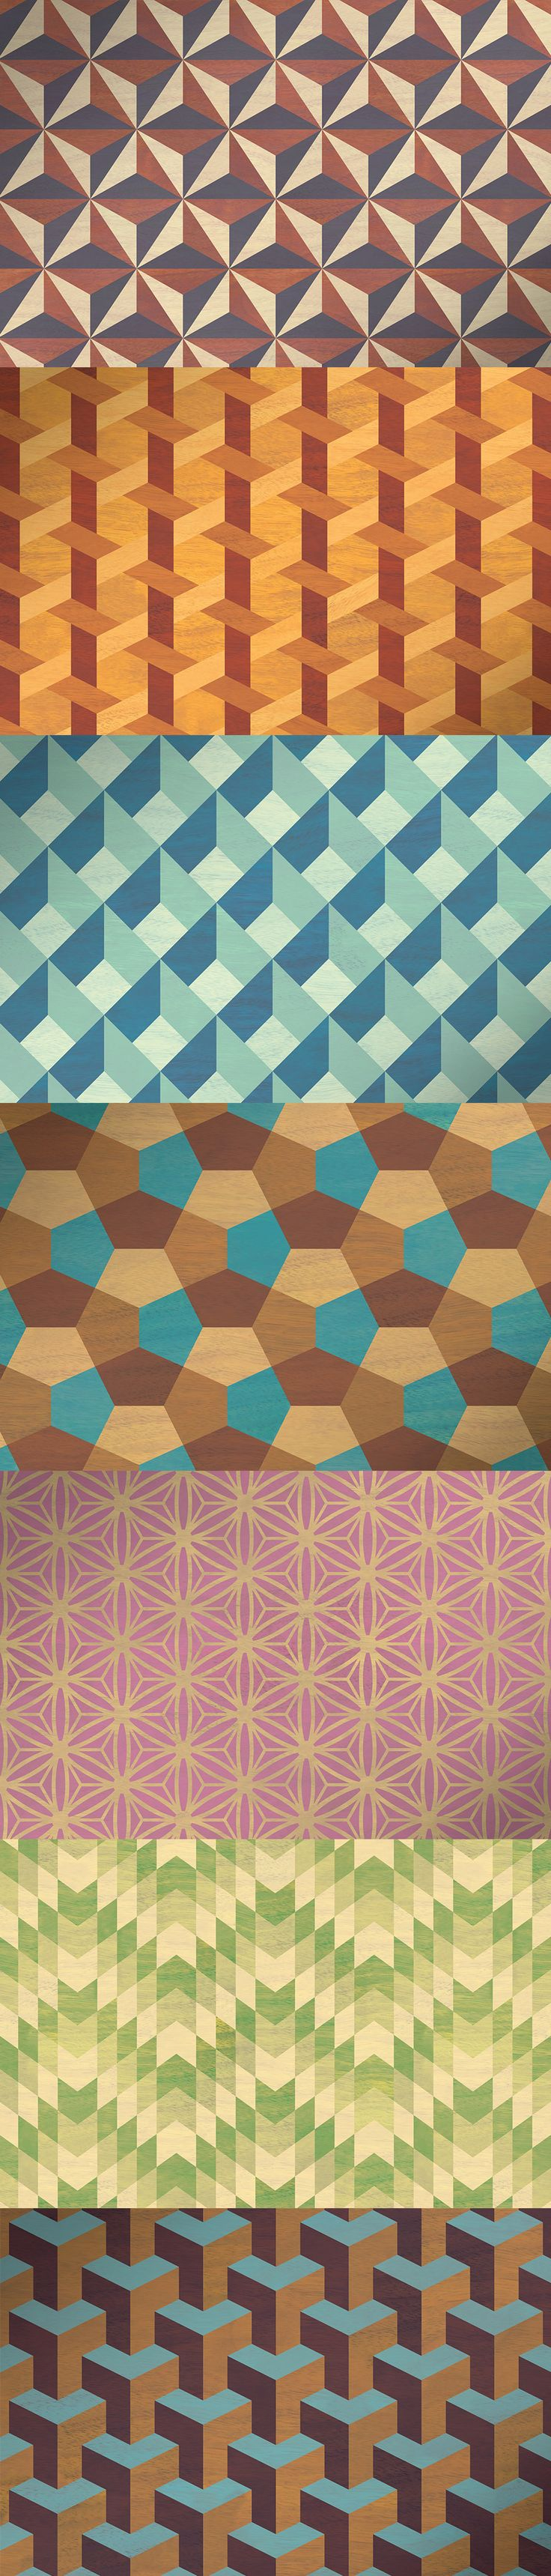 Geometric Marquetry Patterns  -  https://www.designcuts.com/product/geometric-marquetry-patterns/